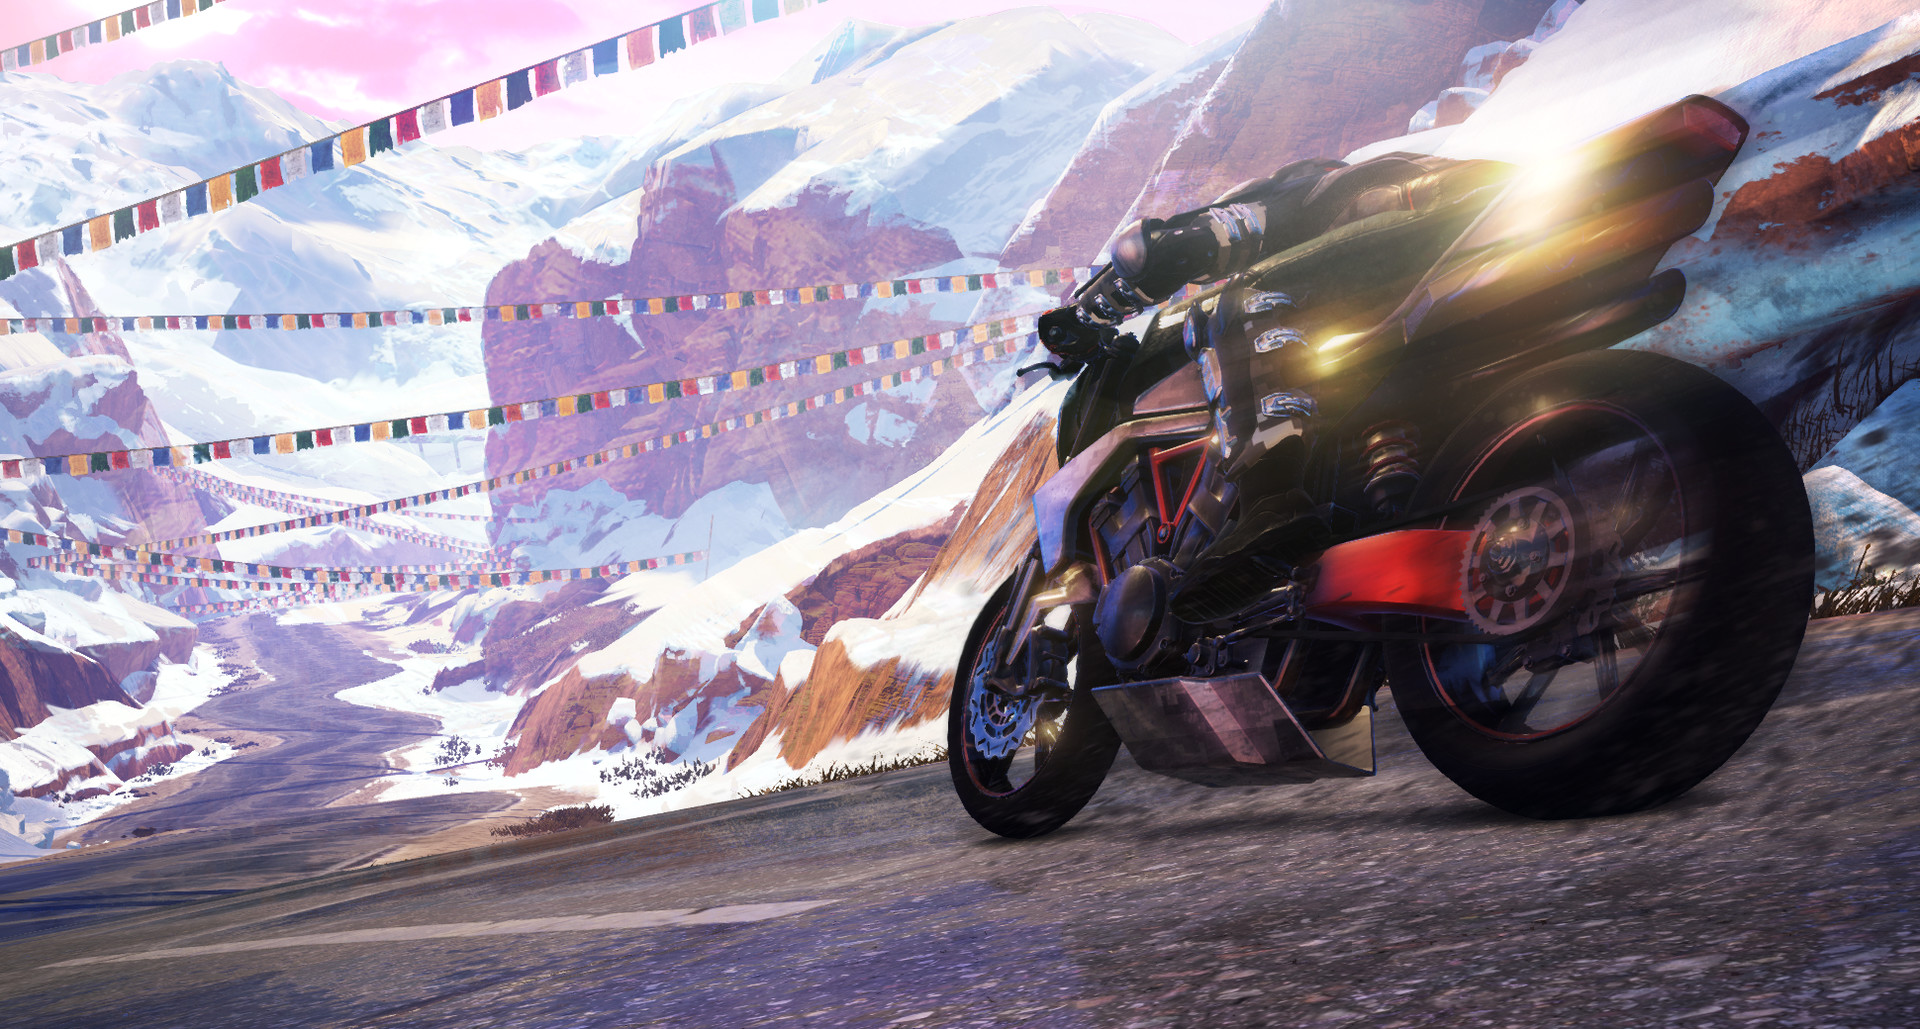 Official Moto Racer 4 Season Pass (PC)